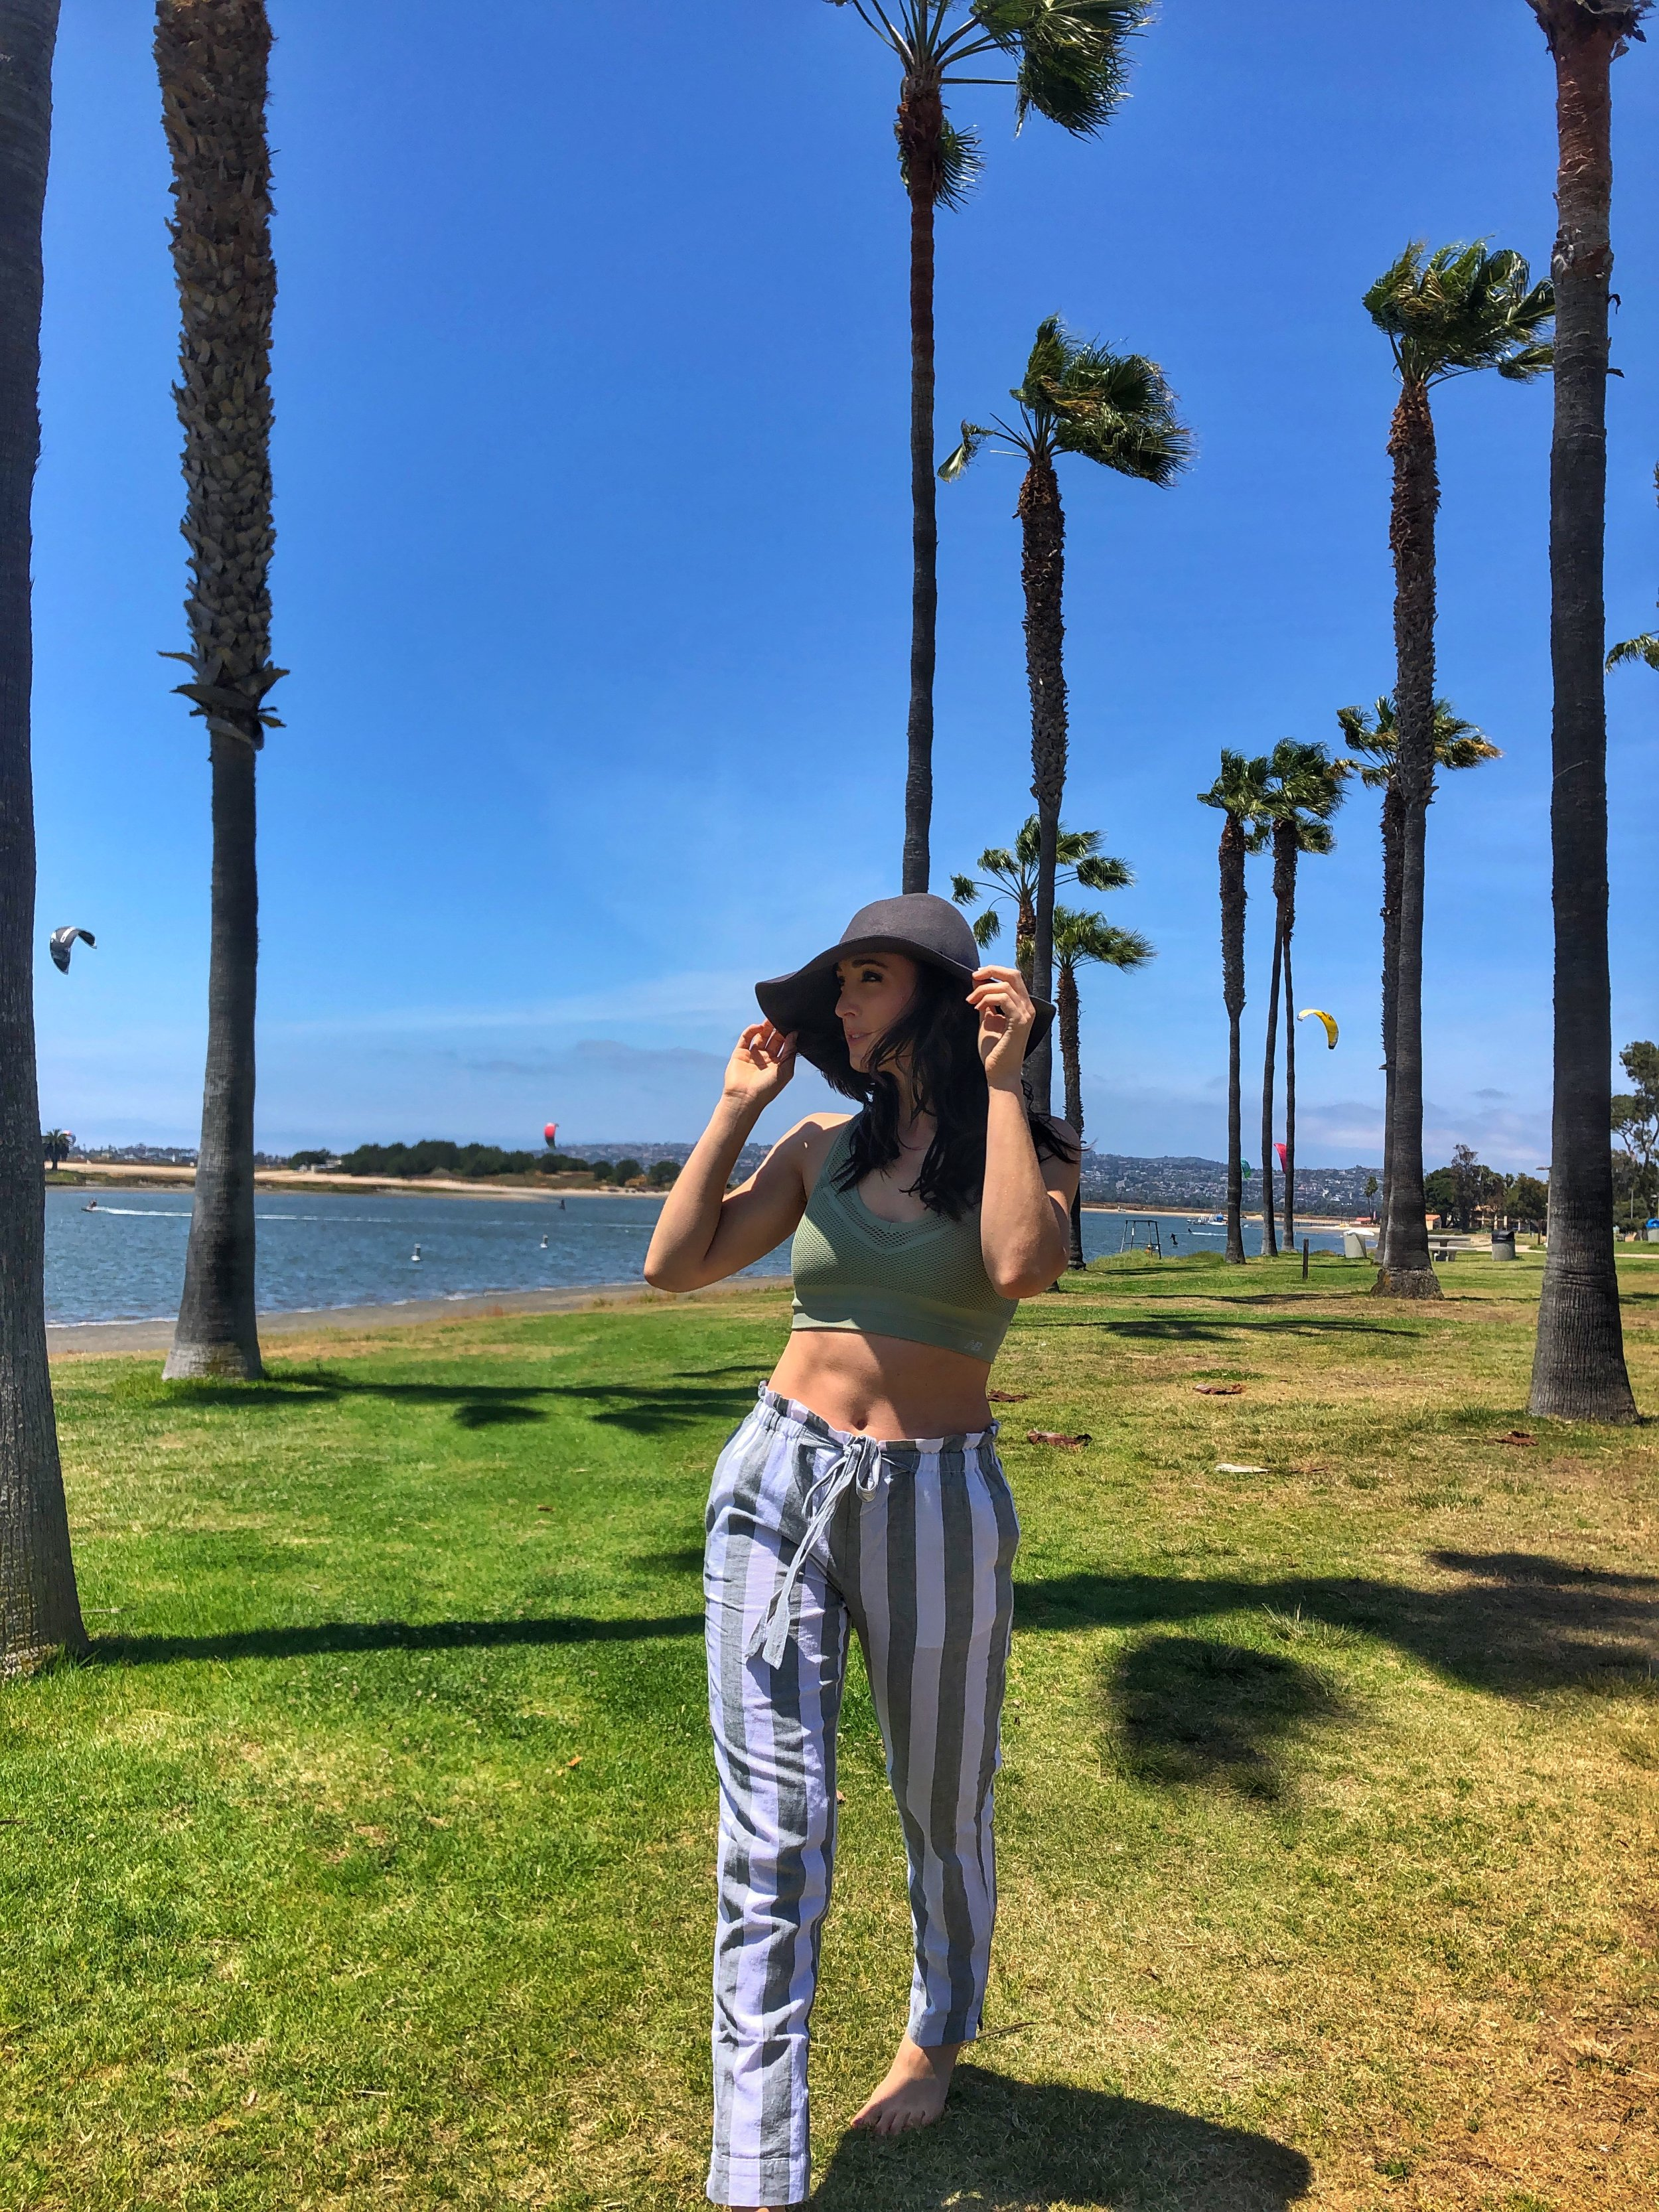 Mission Bay Park. Linen pants in San Diego.